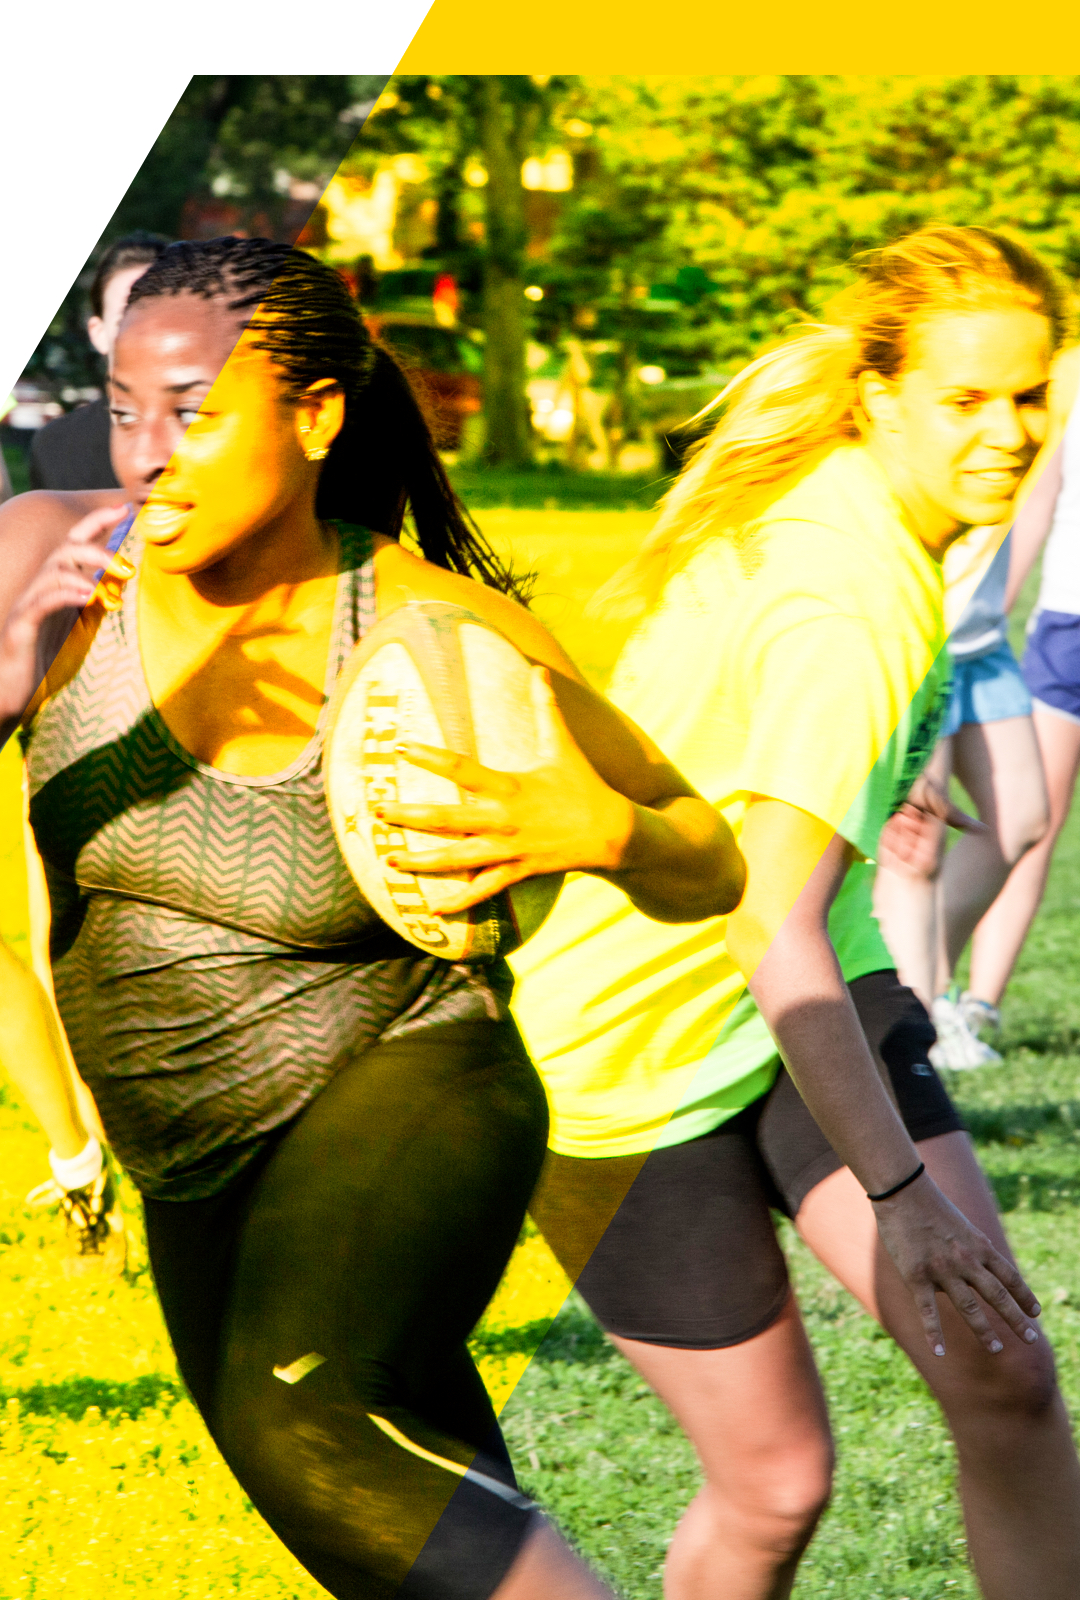 sorority cup image